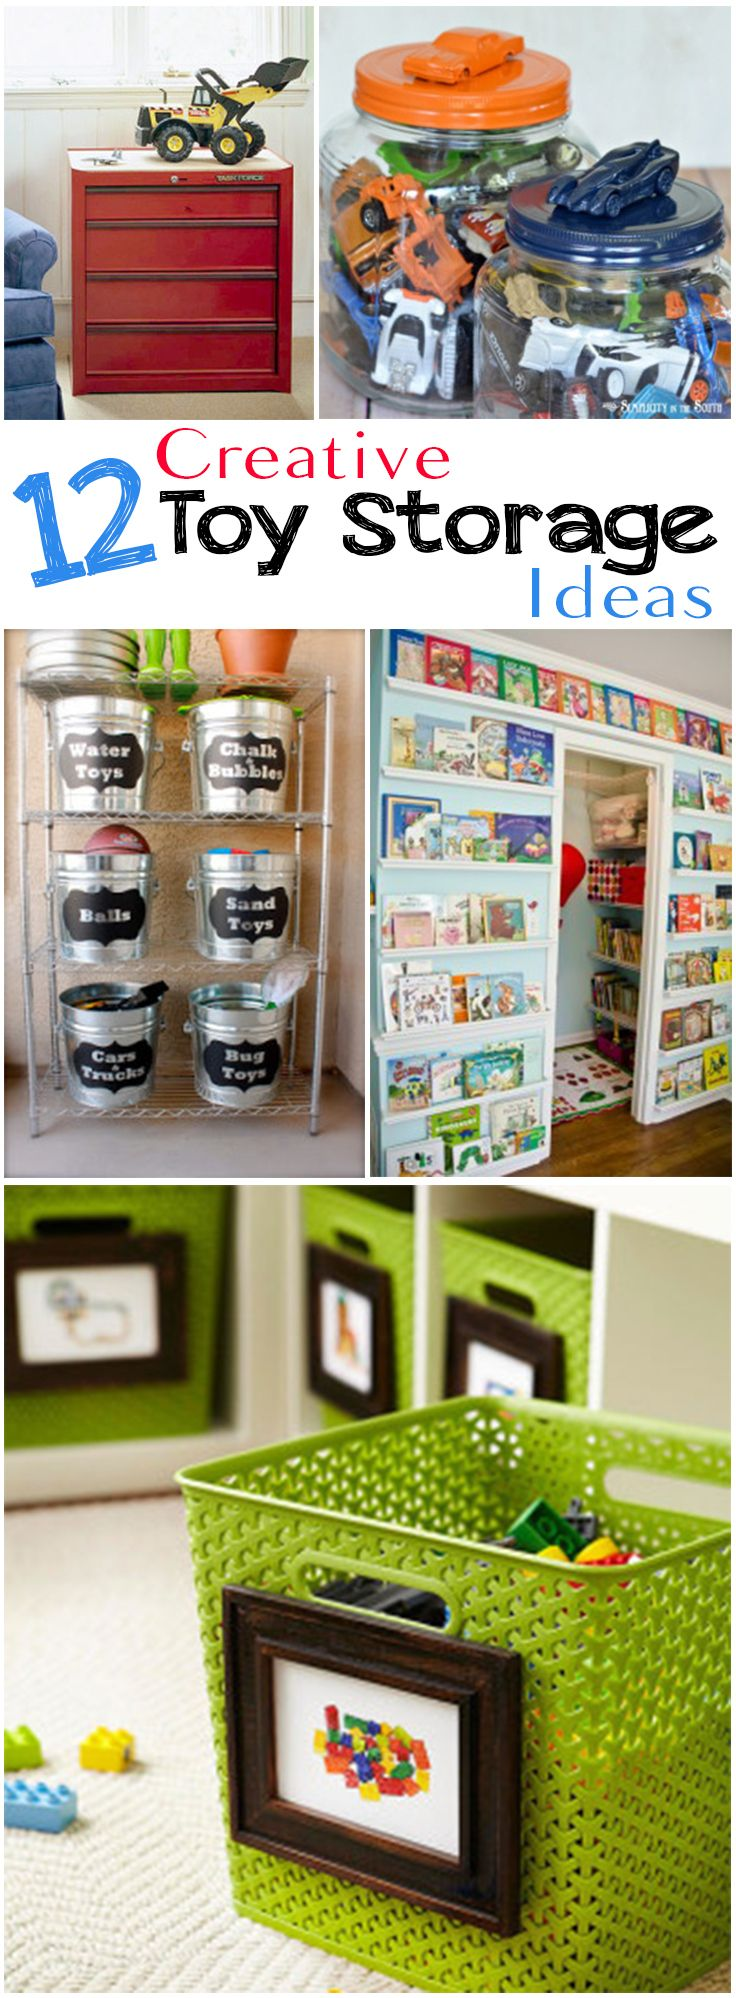 420 Best Images About Kids Playroom Ideas On Pinterest